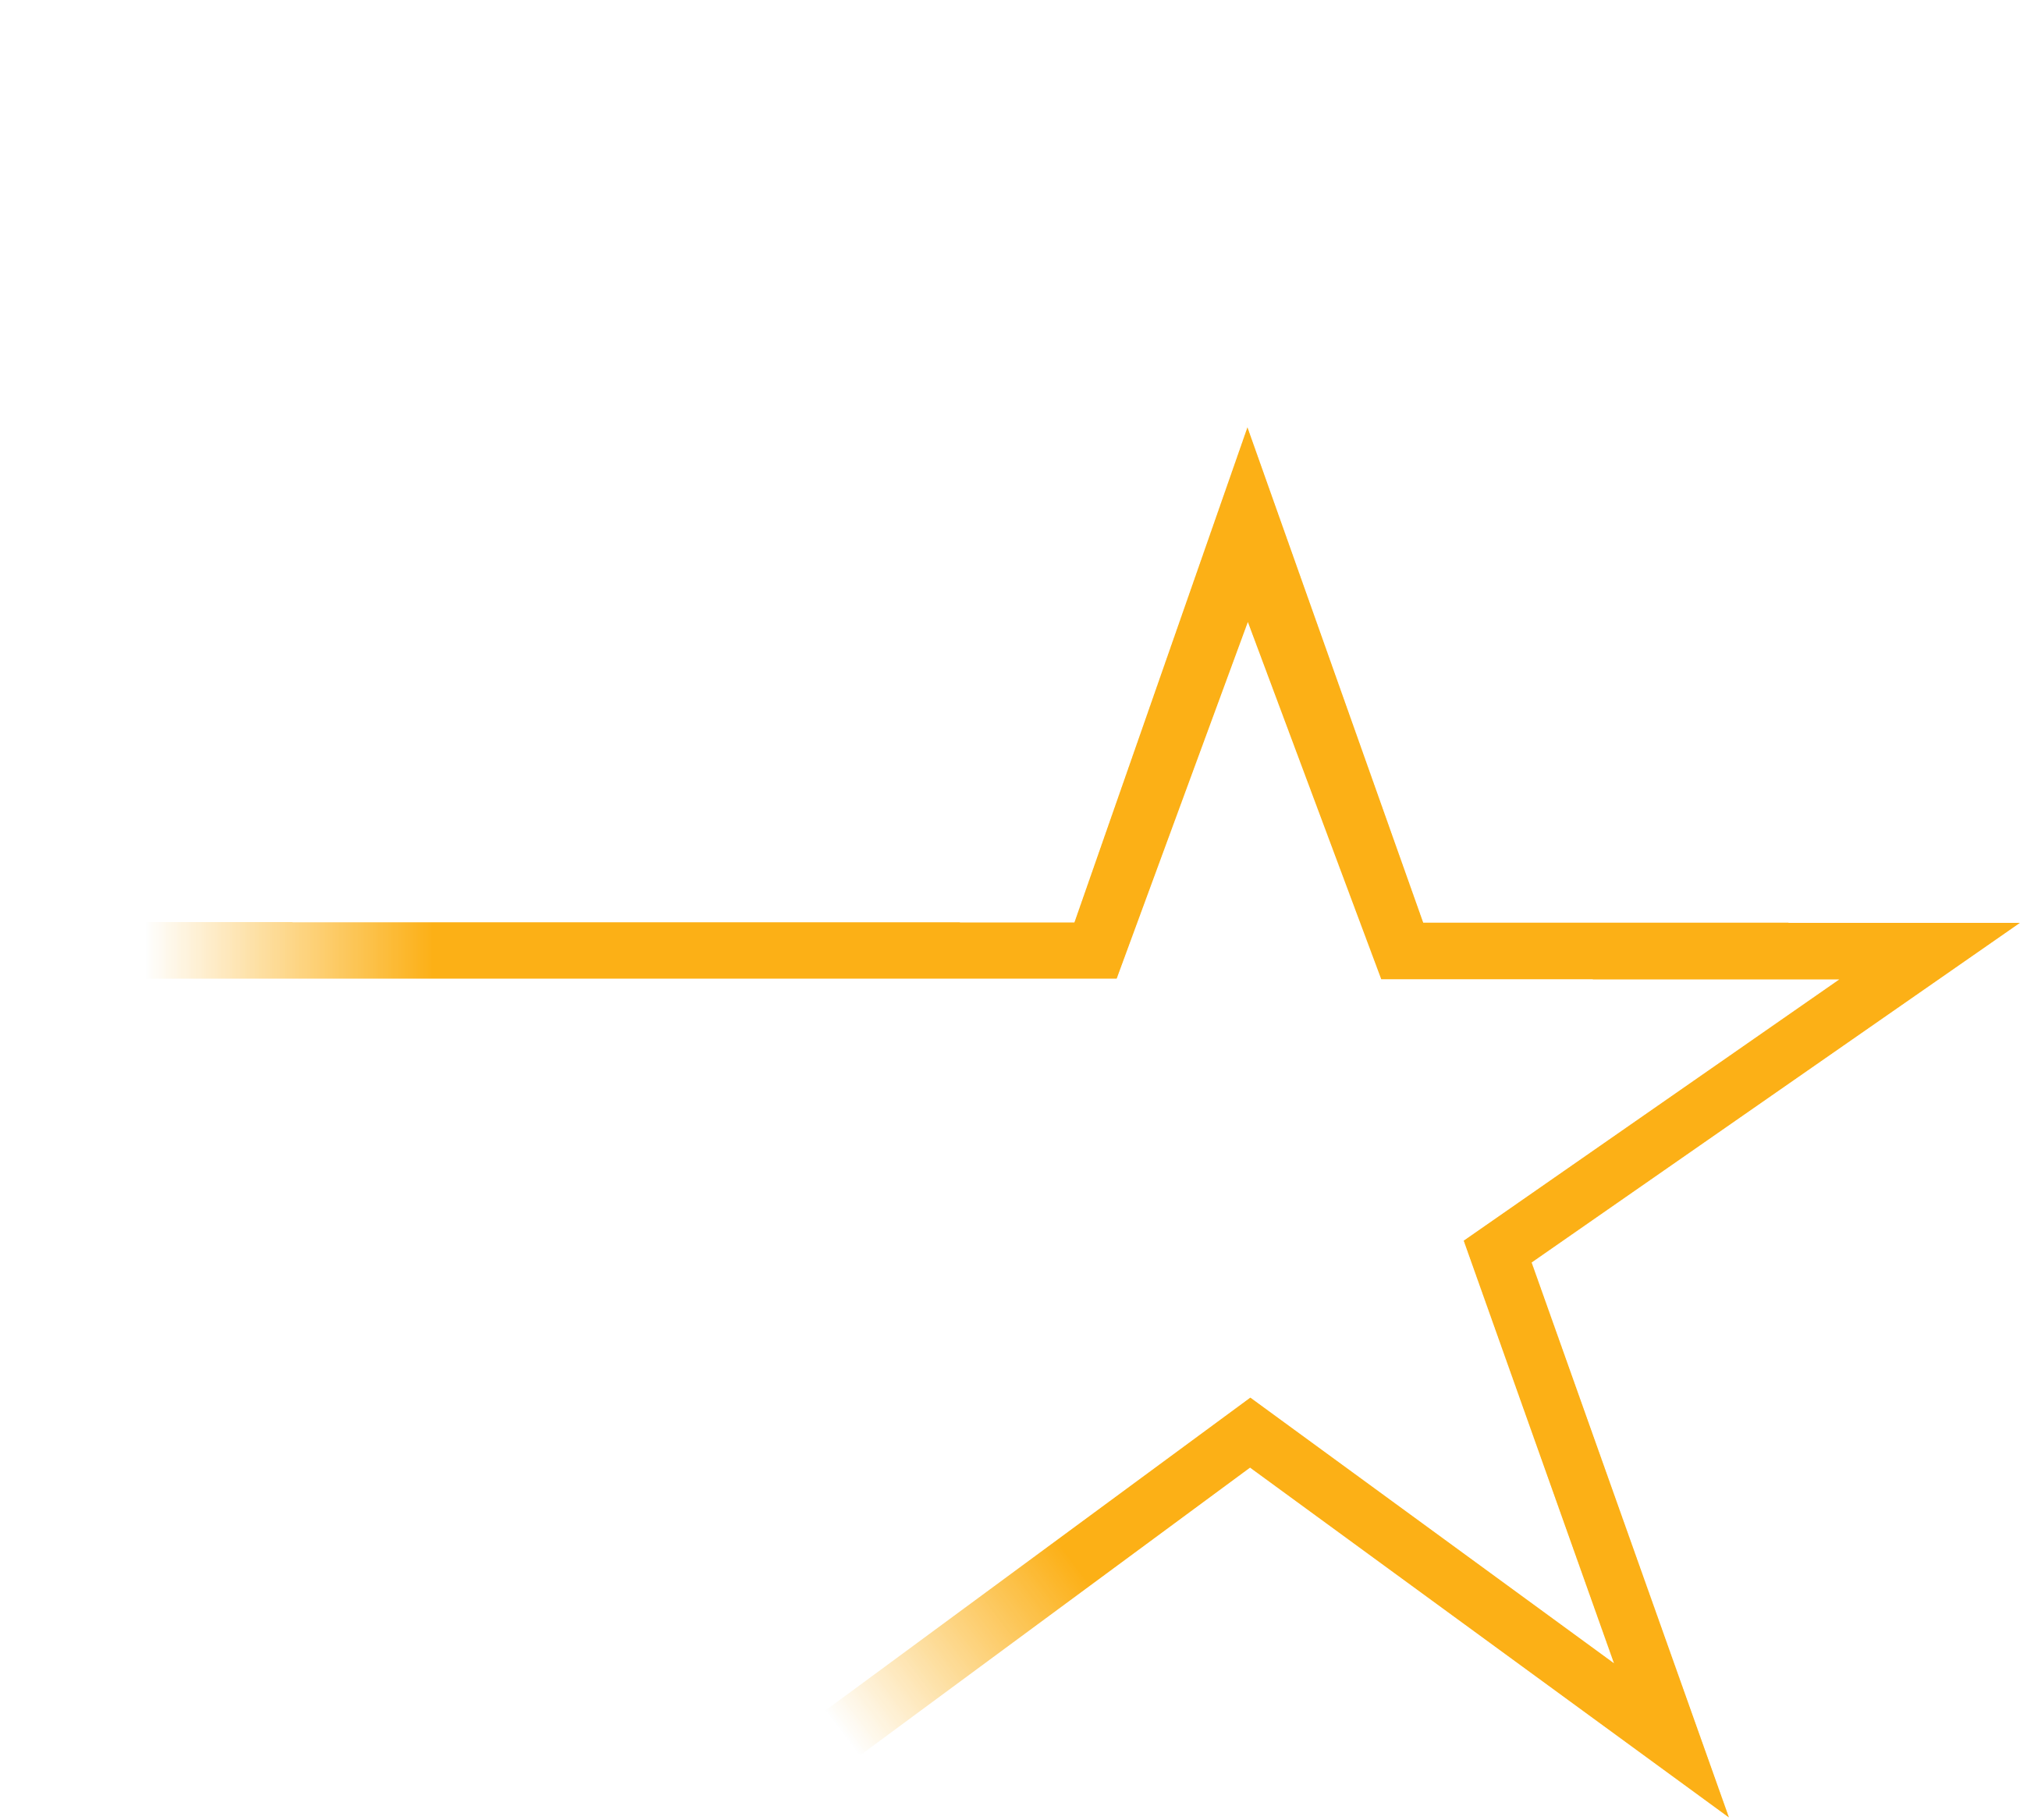 National Windrush Star Awards website logo